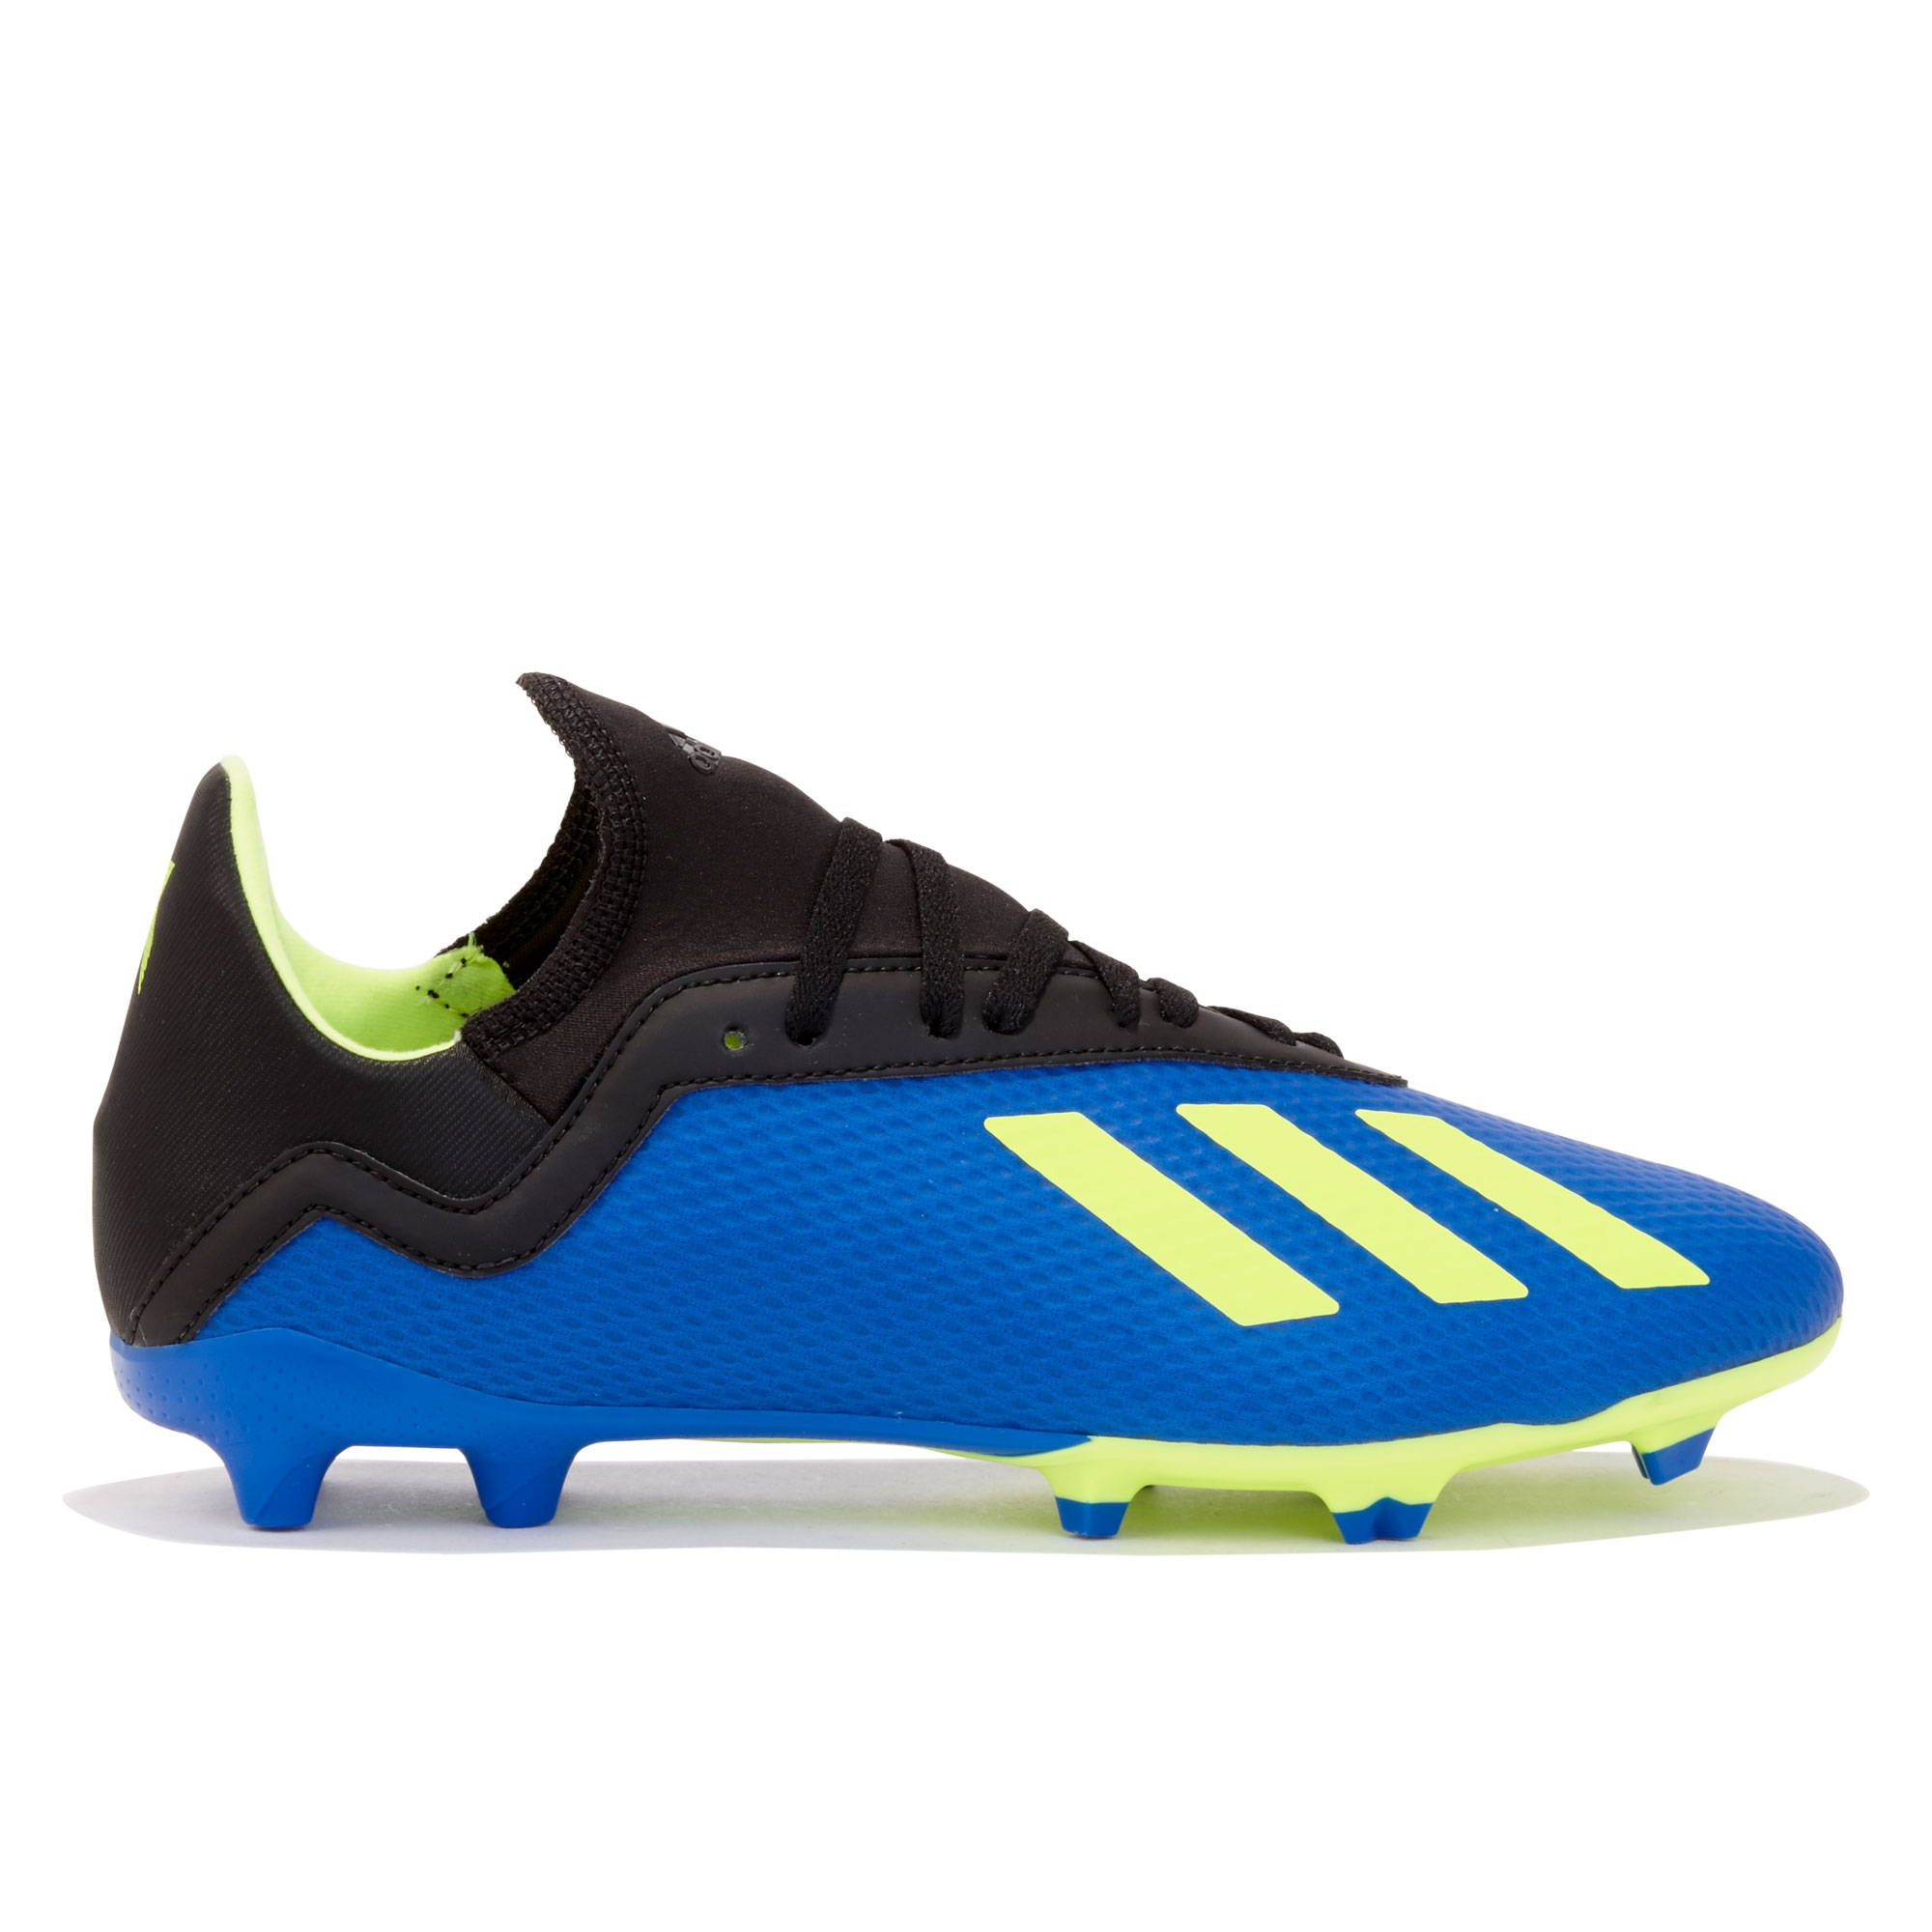 Image of adidas X 18.3 Firm Ground Football Boots - Blue - Kids